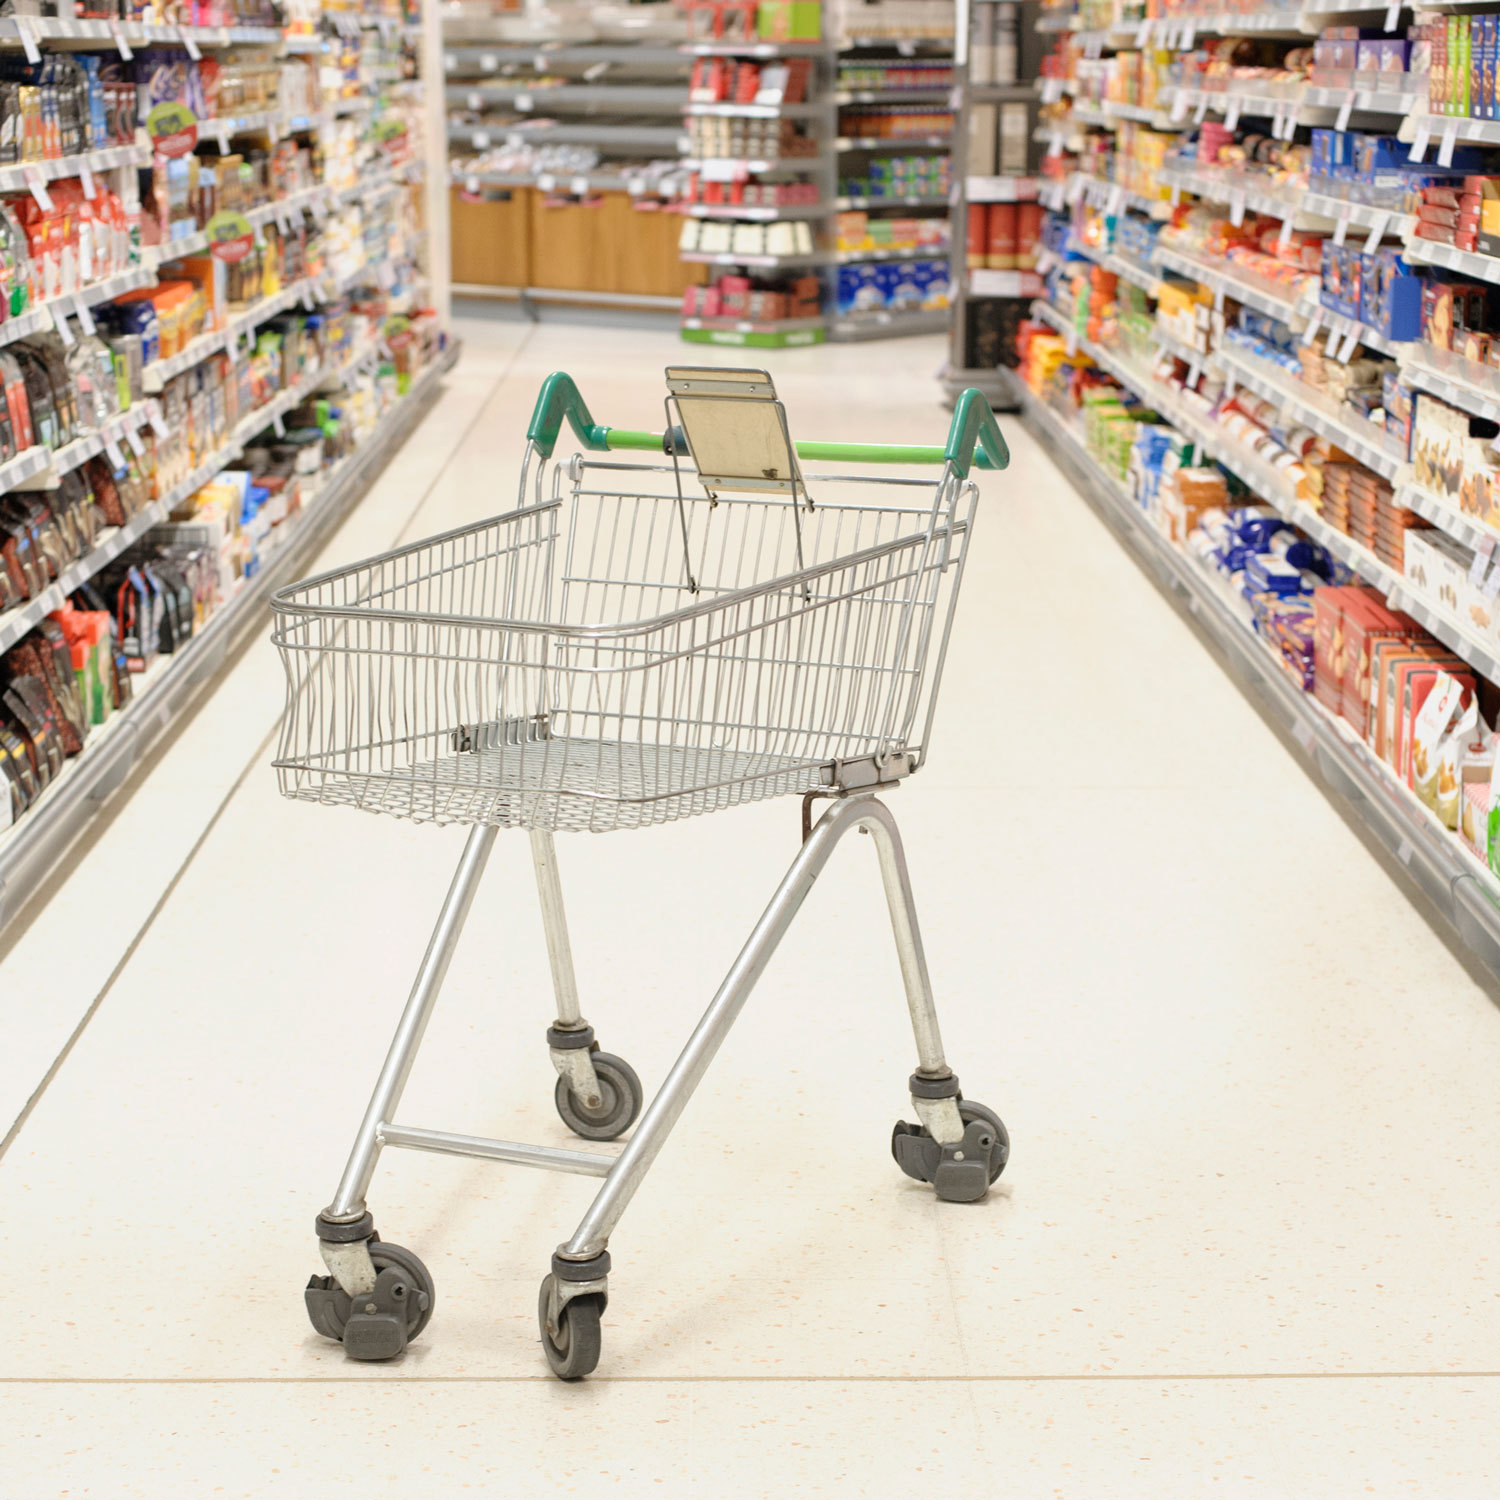 empty grocery cart in a grocery store aisle